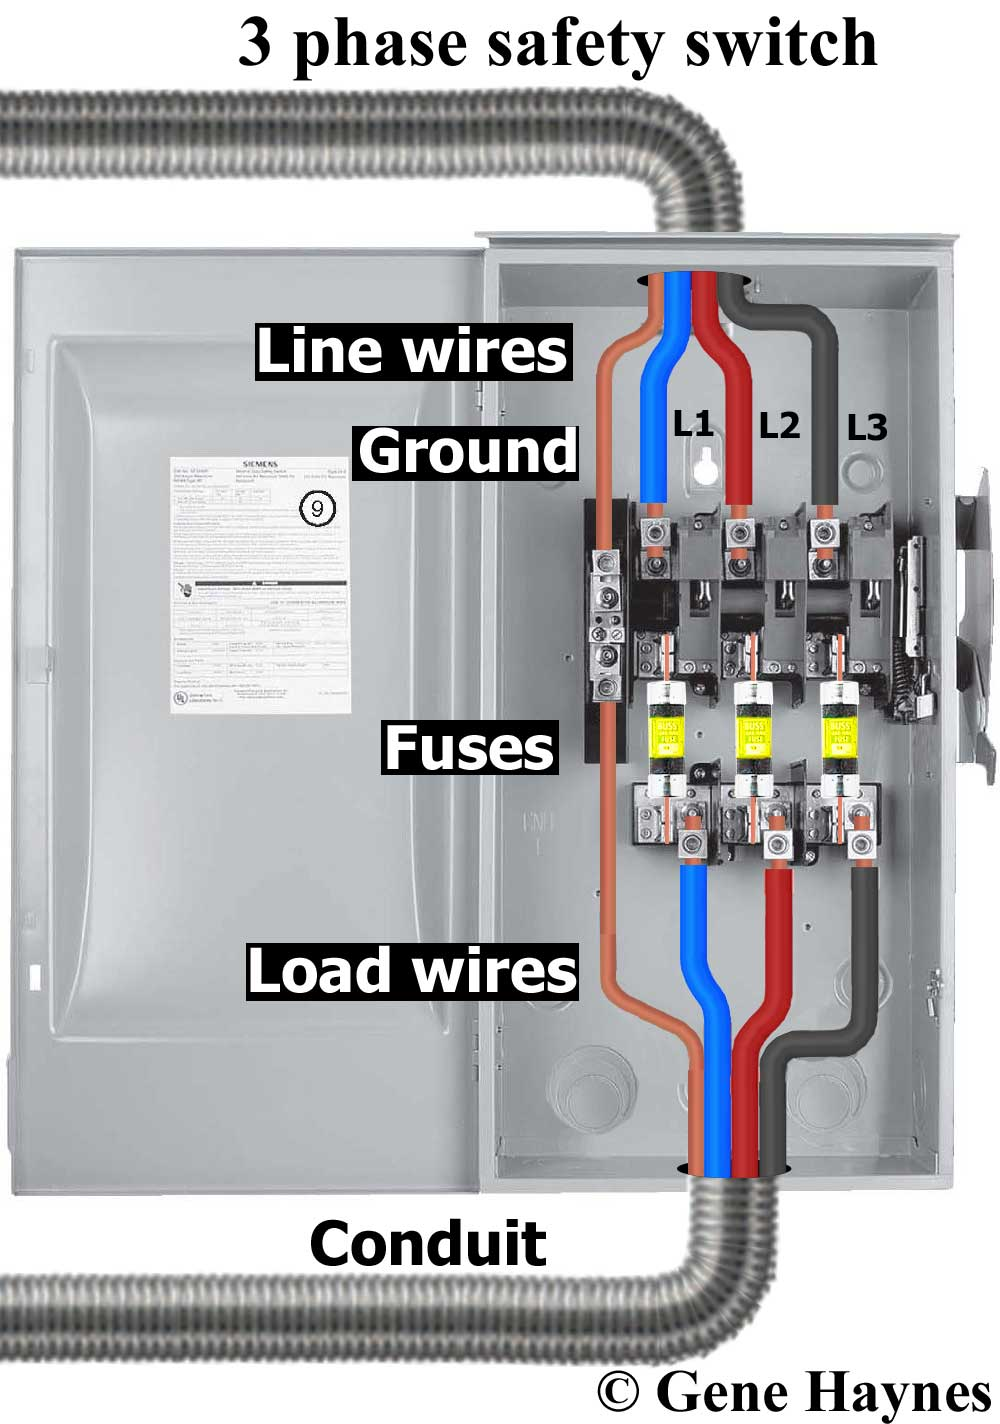 Fusable safety fuse how to wire safety switch on four fuse disconnect box